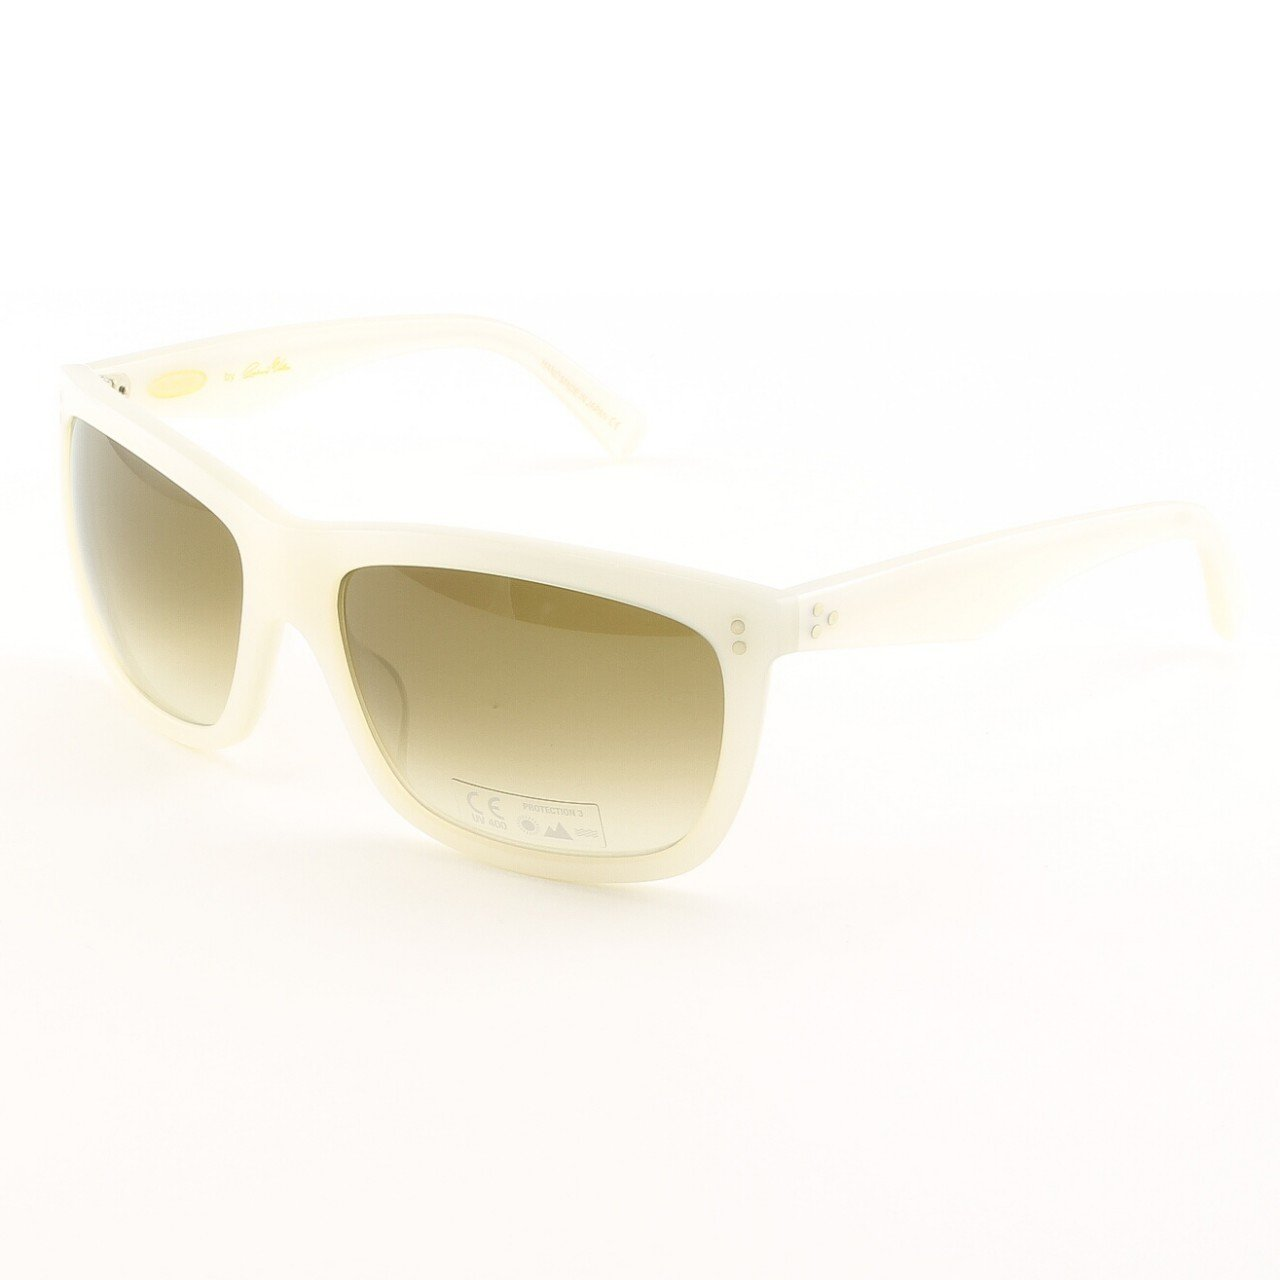 Blinde I'll Make It Up 2 U Unisex Sunglasses Col. White Pearl with Brown Gradient Lenses